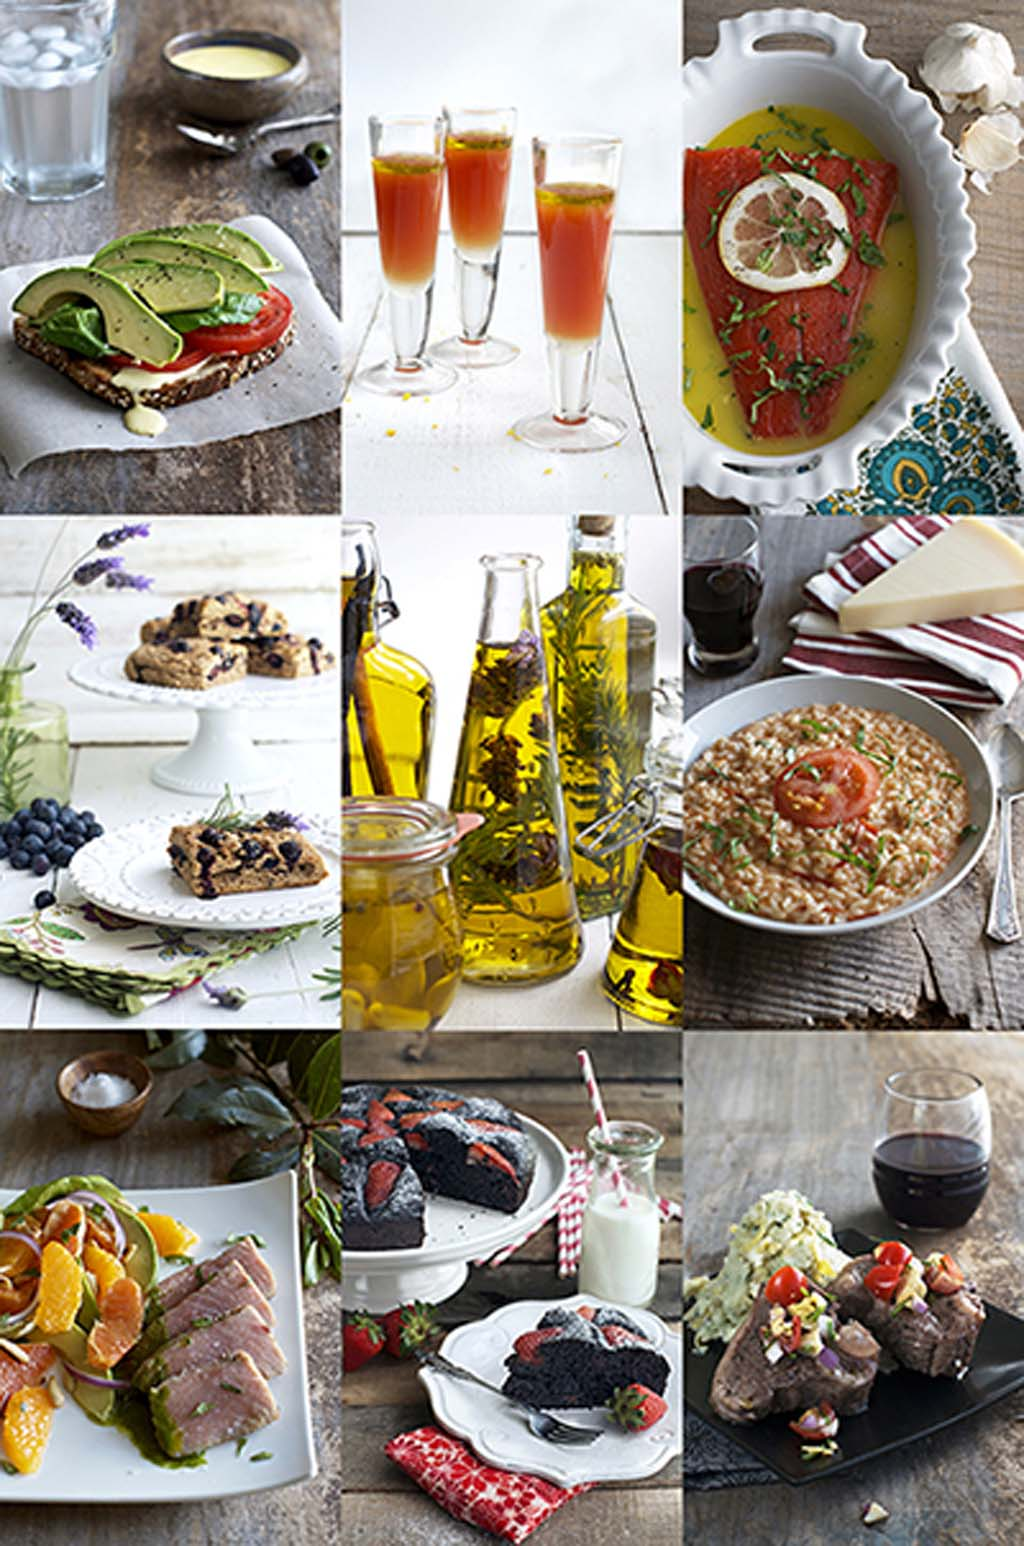 evoo_collage 1024